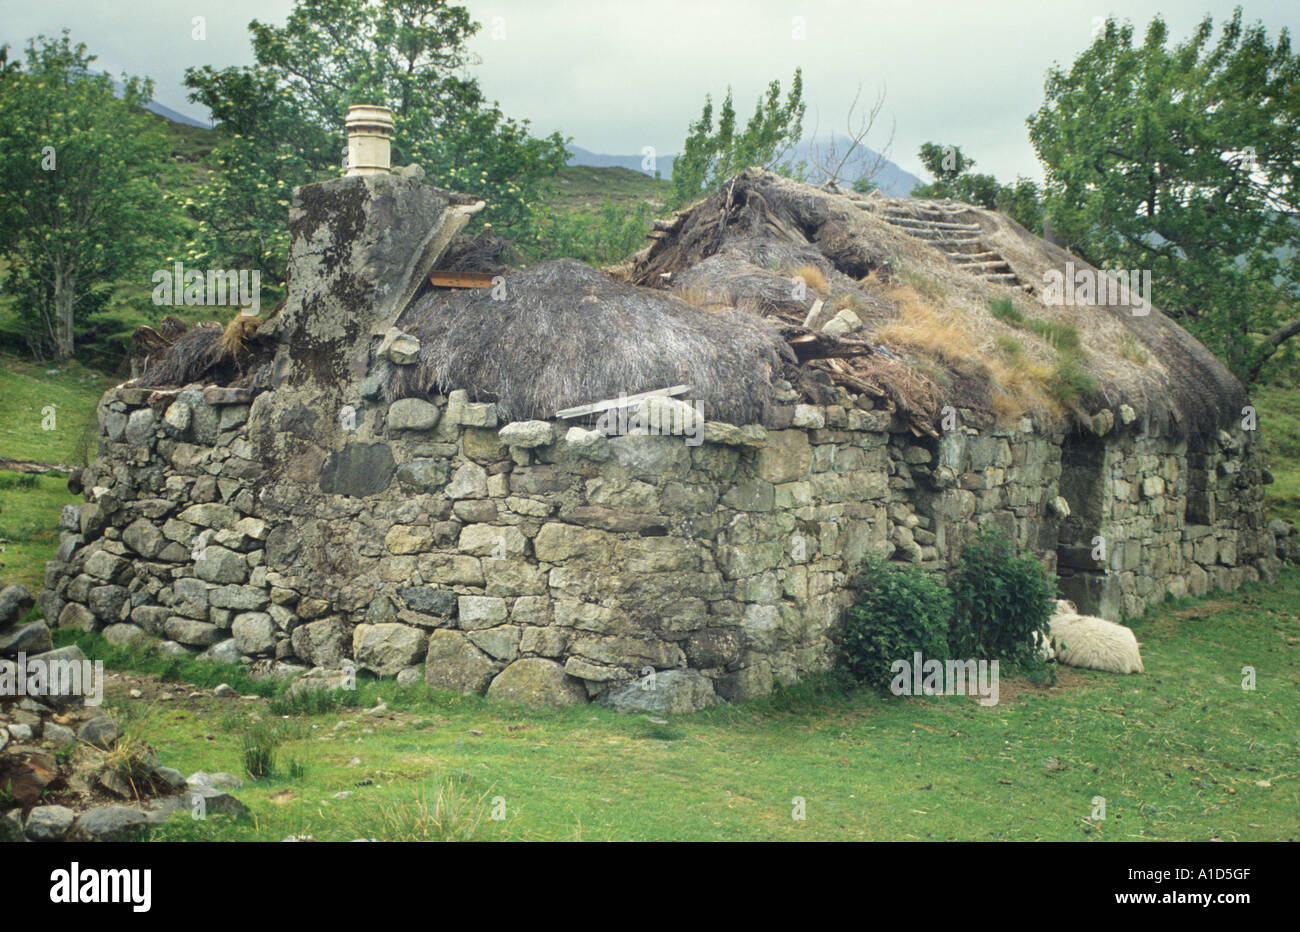 Abandoned Derelict Blackhouse Thatched Roof Ruin Stone